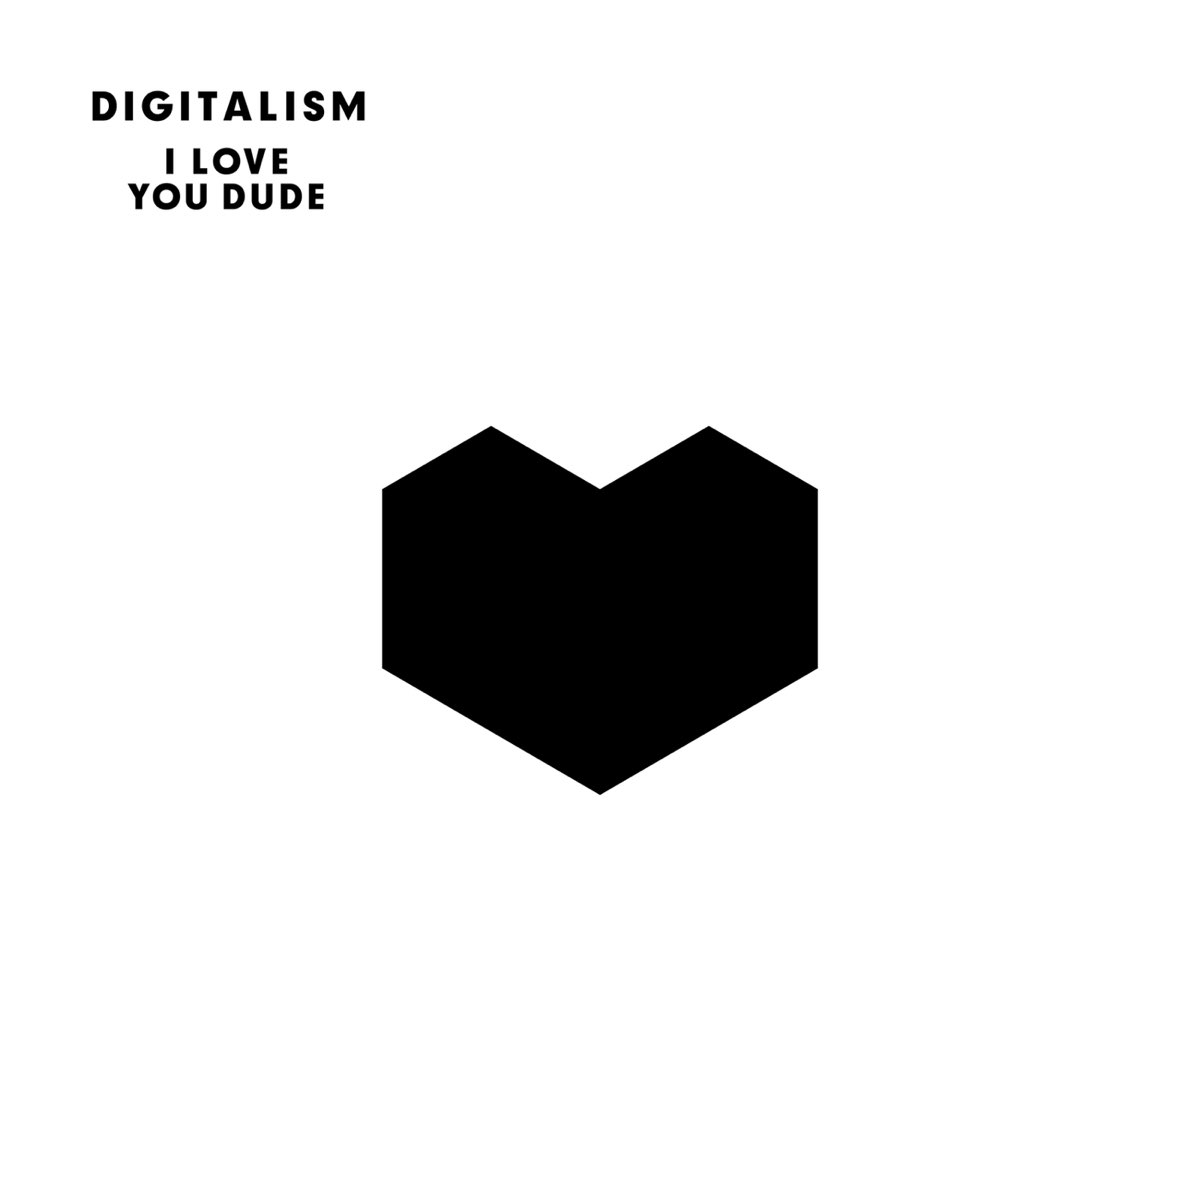 Digitalism, I Love You Dude